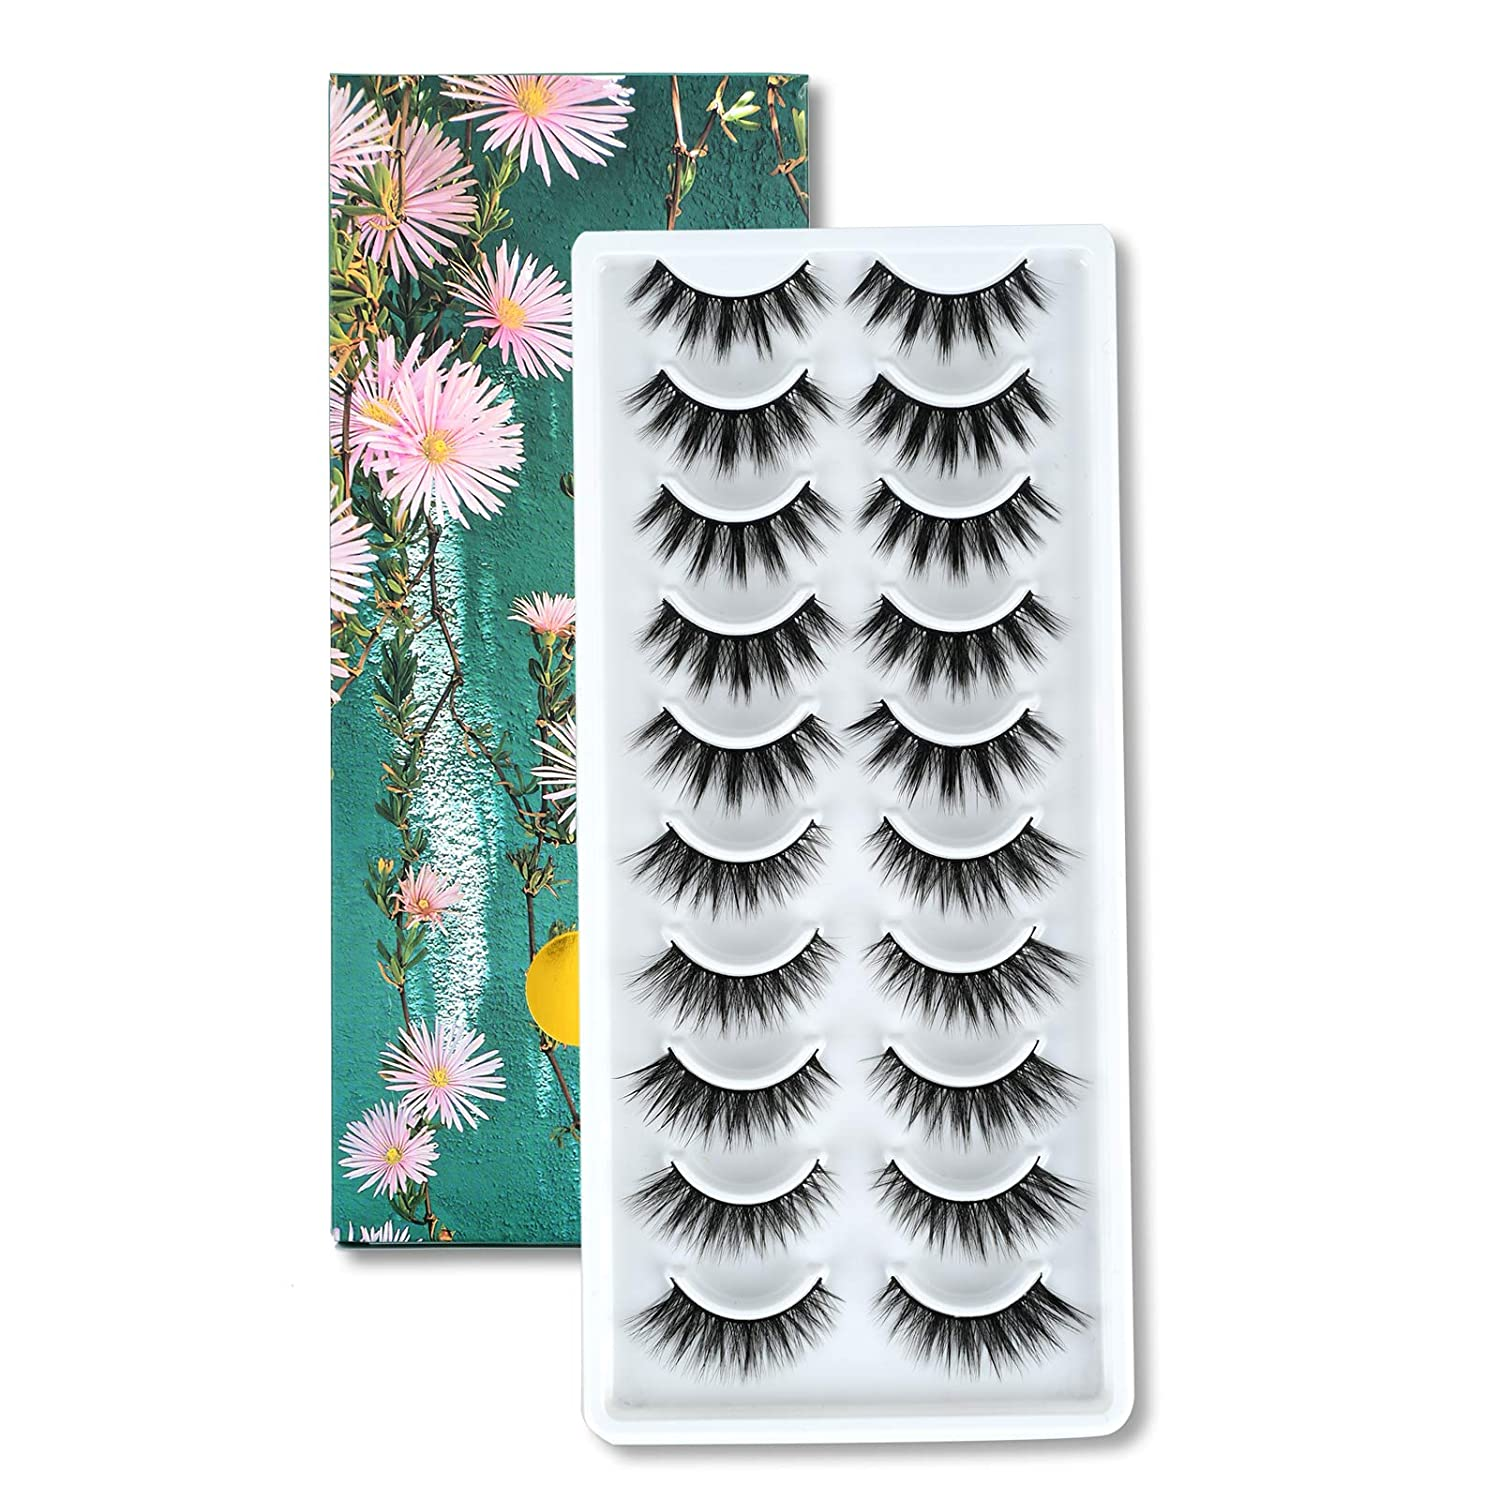 MILUOTUO 10 Mail order Pairs Fluffy False Regular store Eyelashes Stri Faux Natural Mink